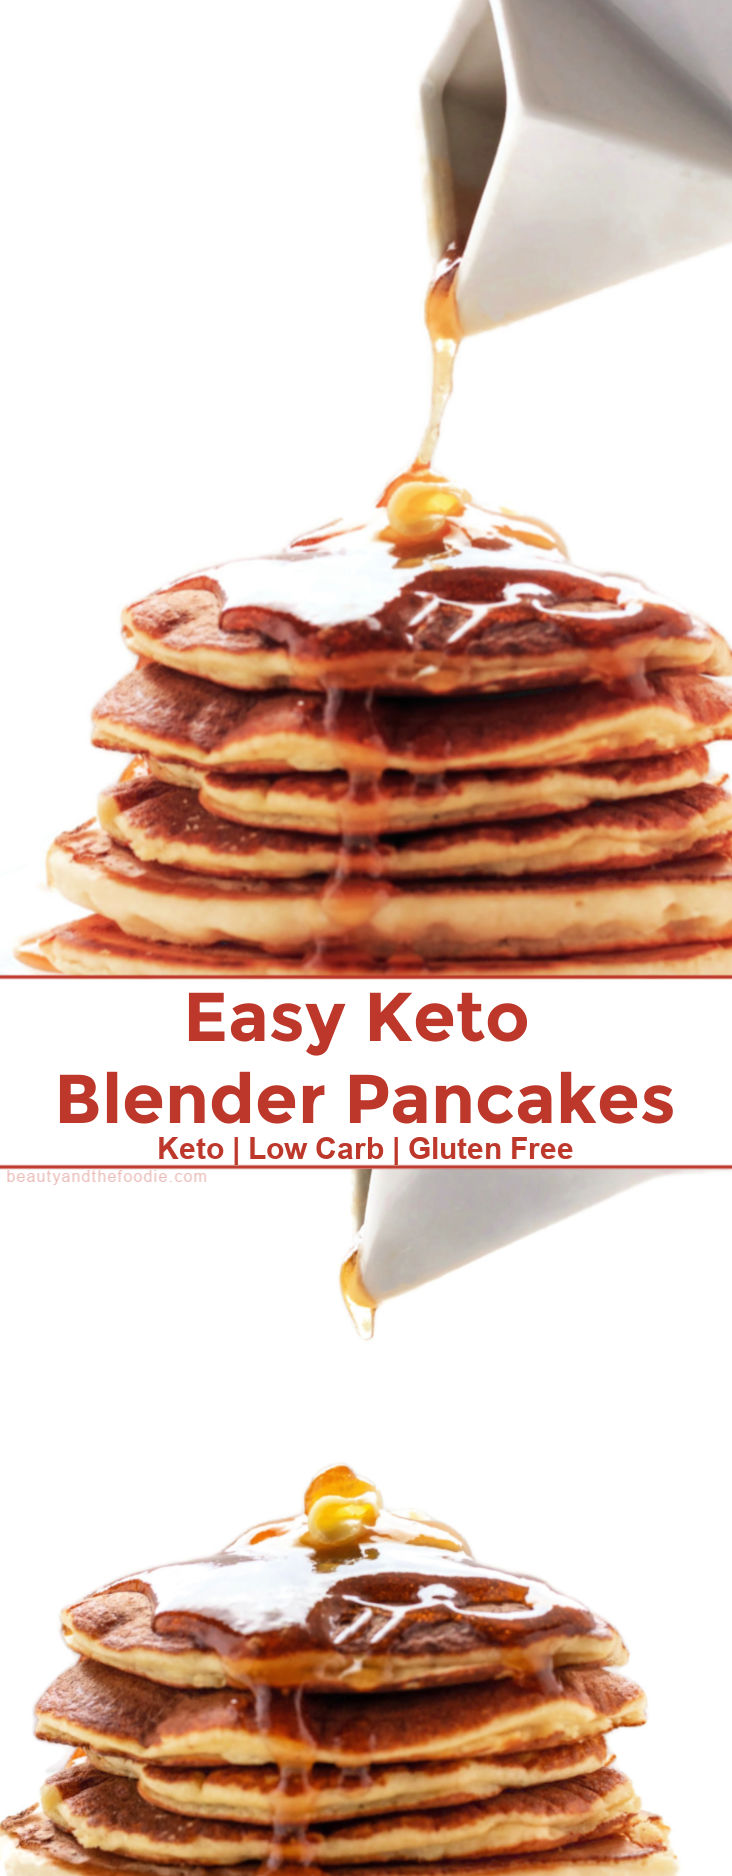 A stack of keto pancakes with syrup running down them.